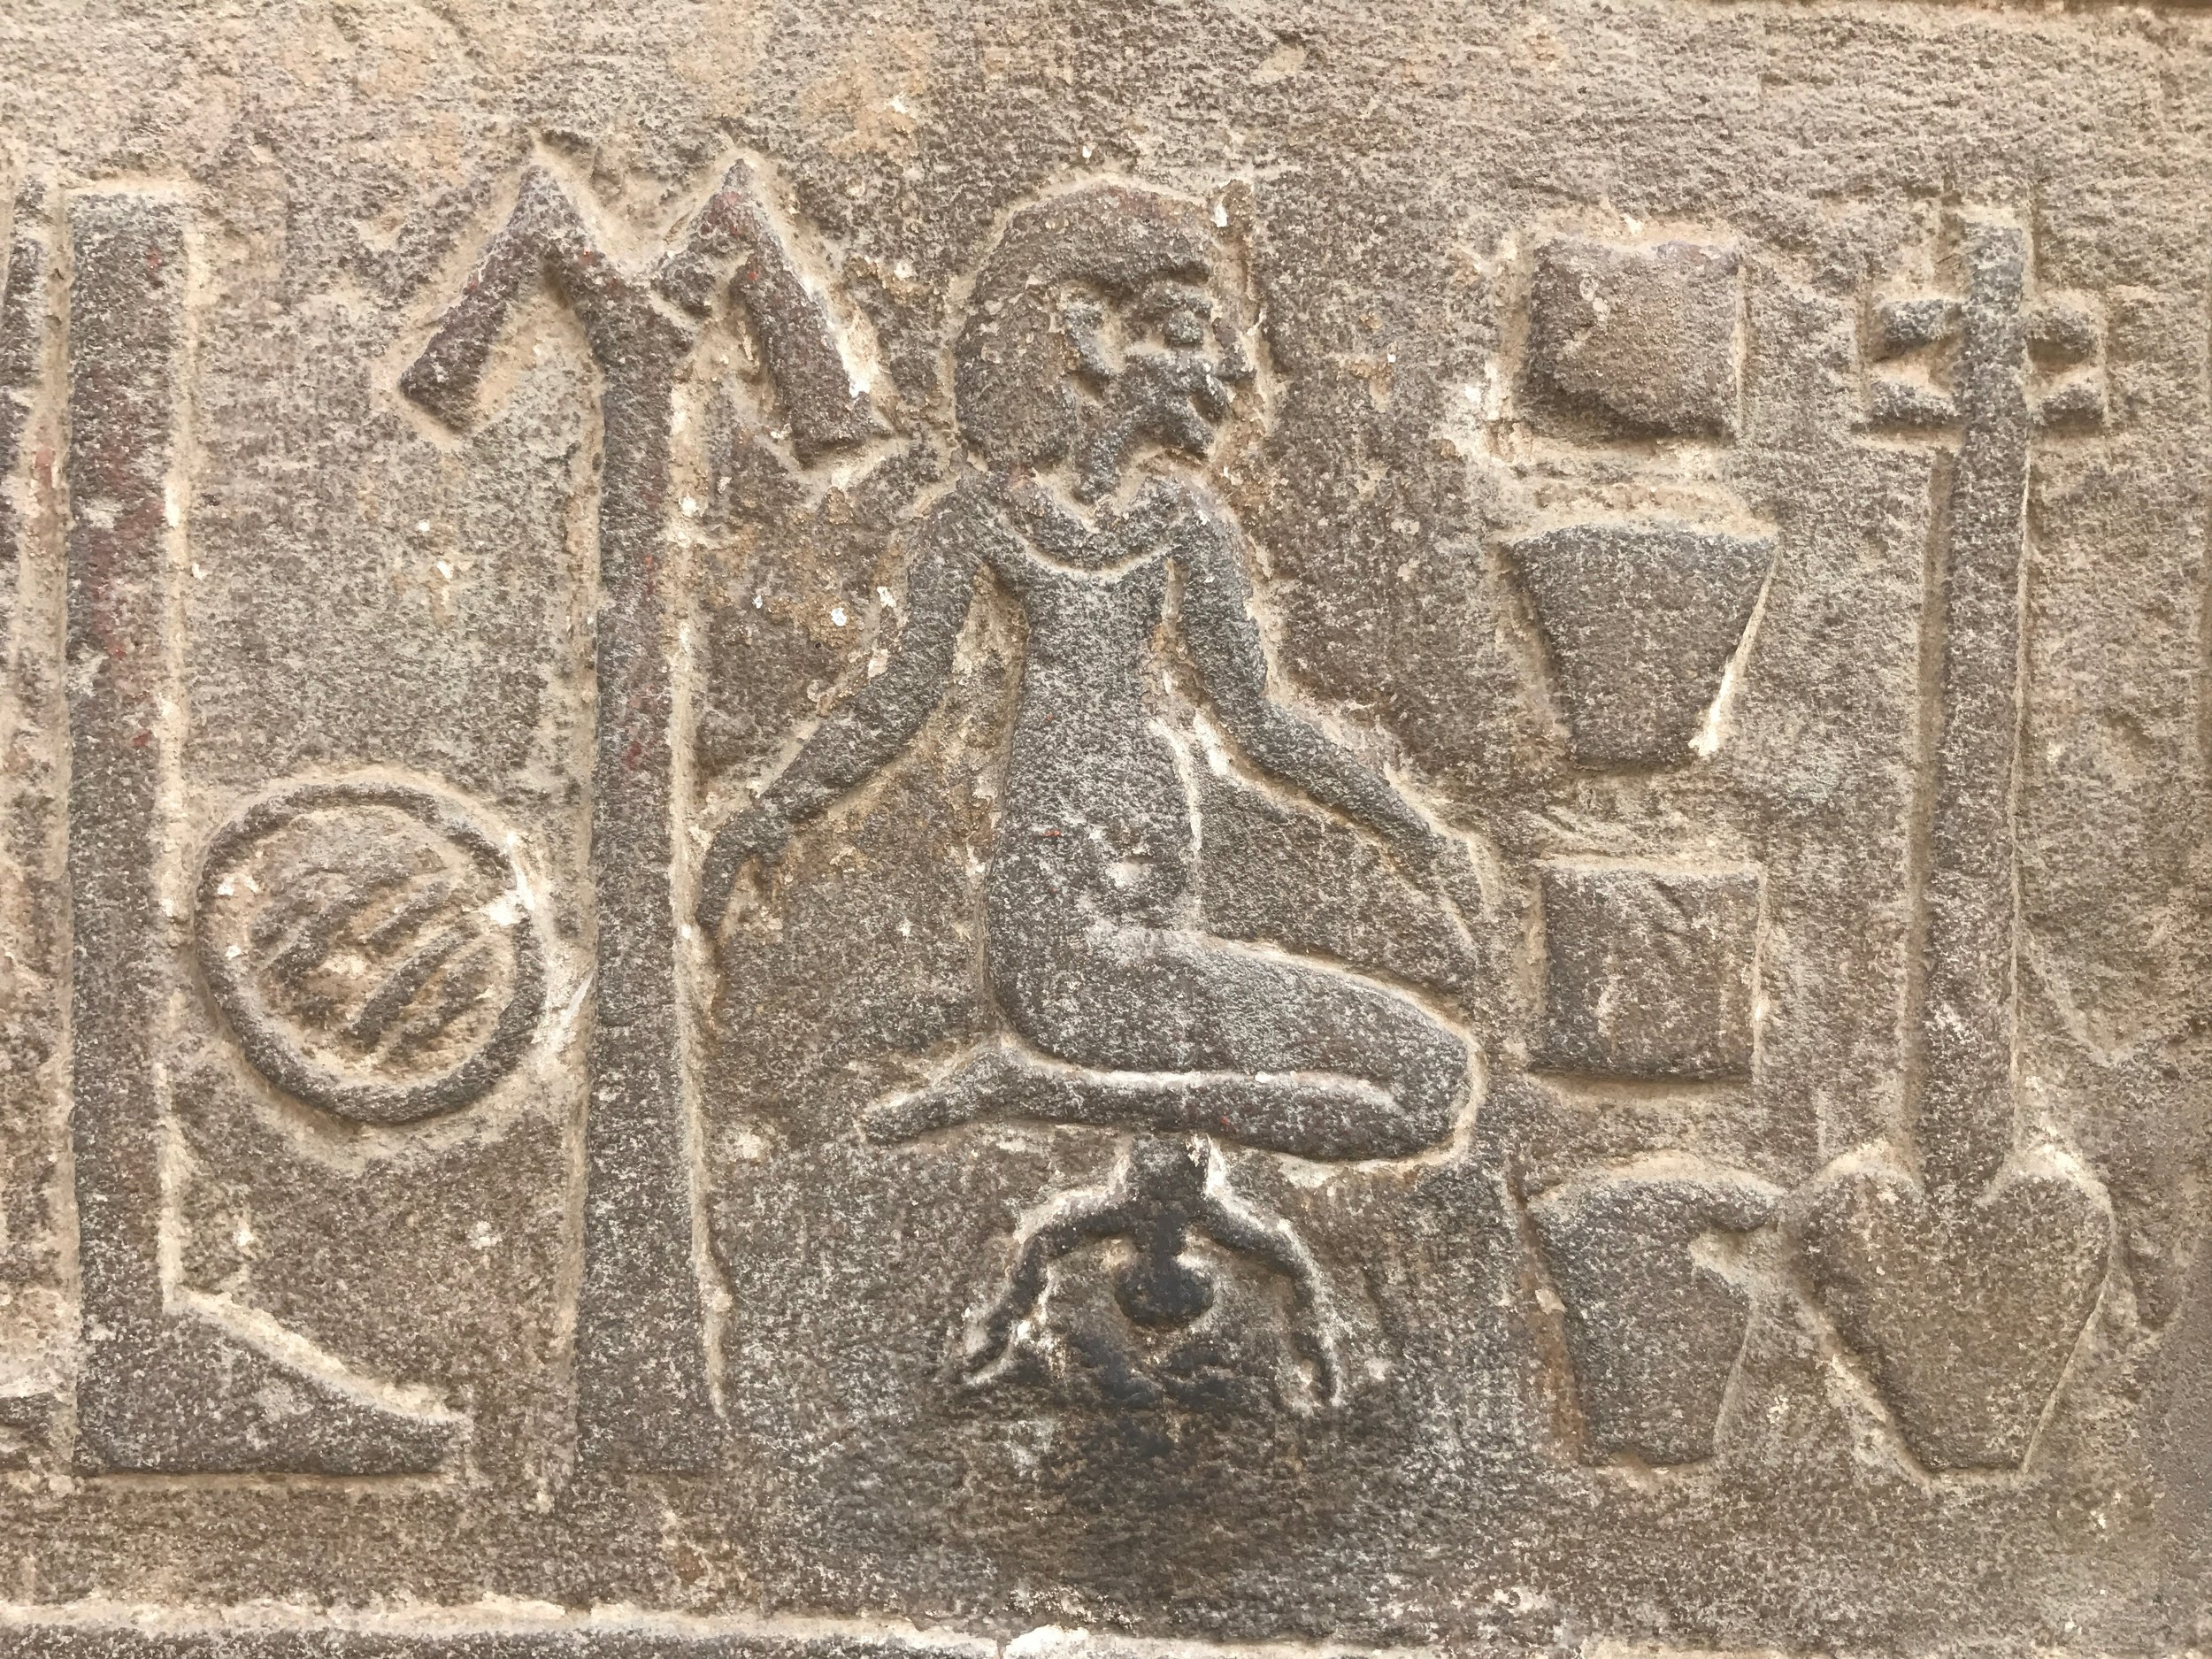 Woman squatting to give birth, on wall of ancient Egyptian temple at Kom Ombo.